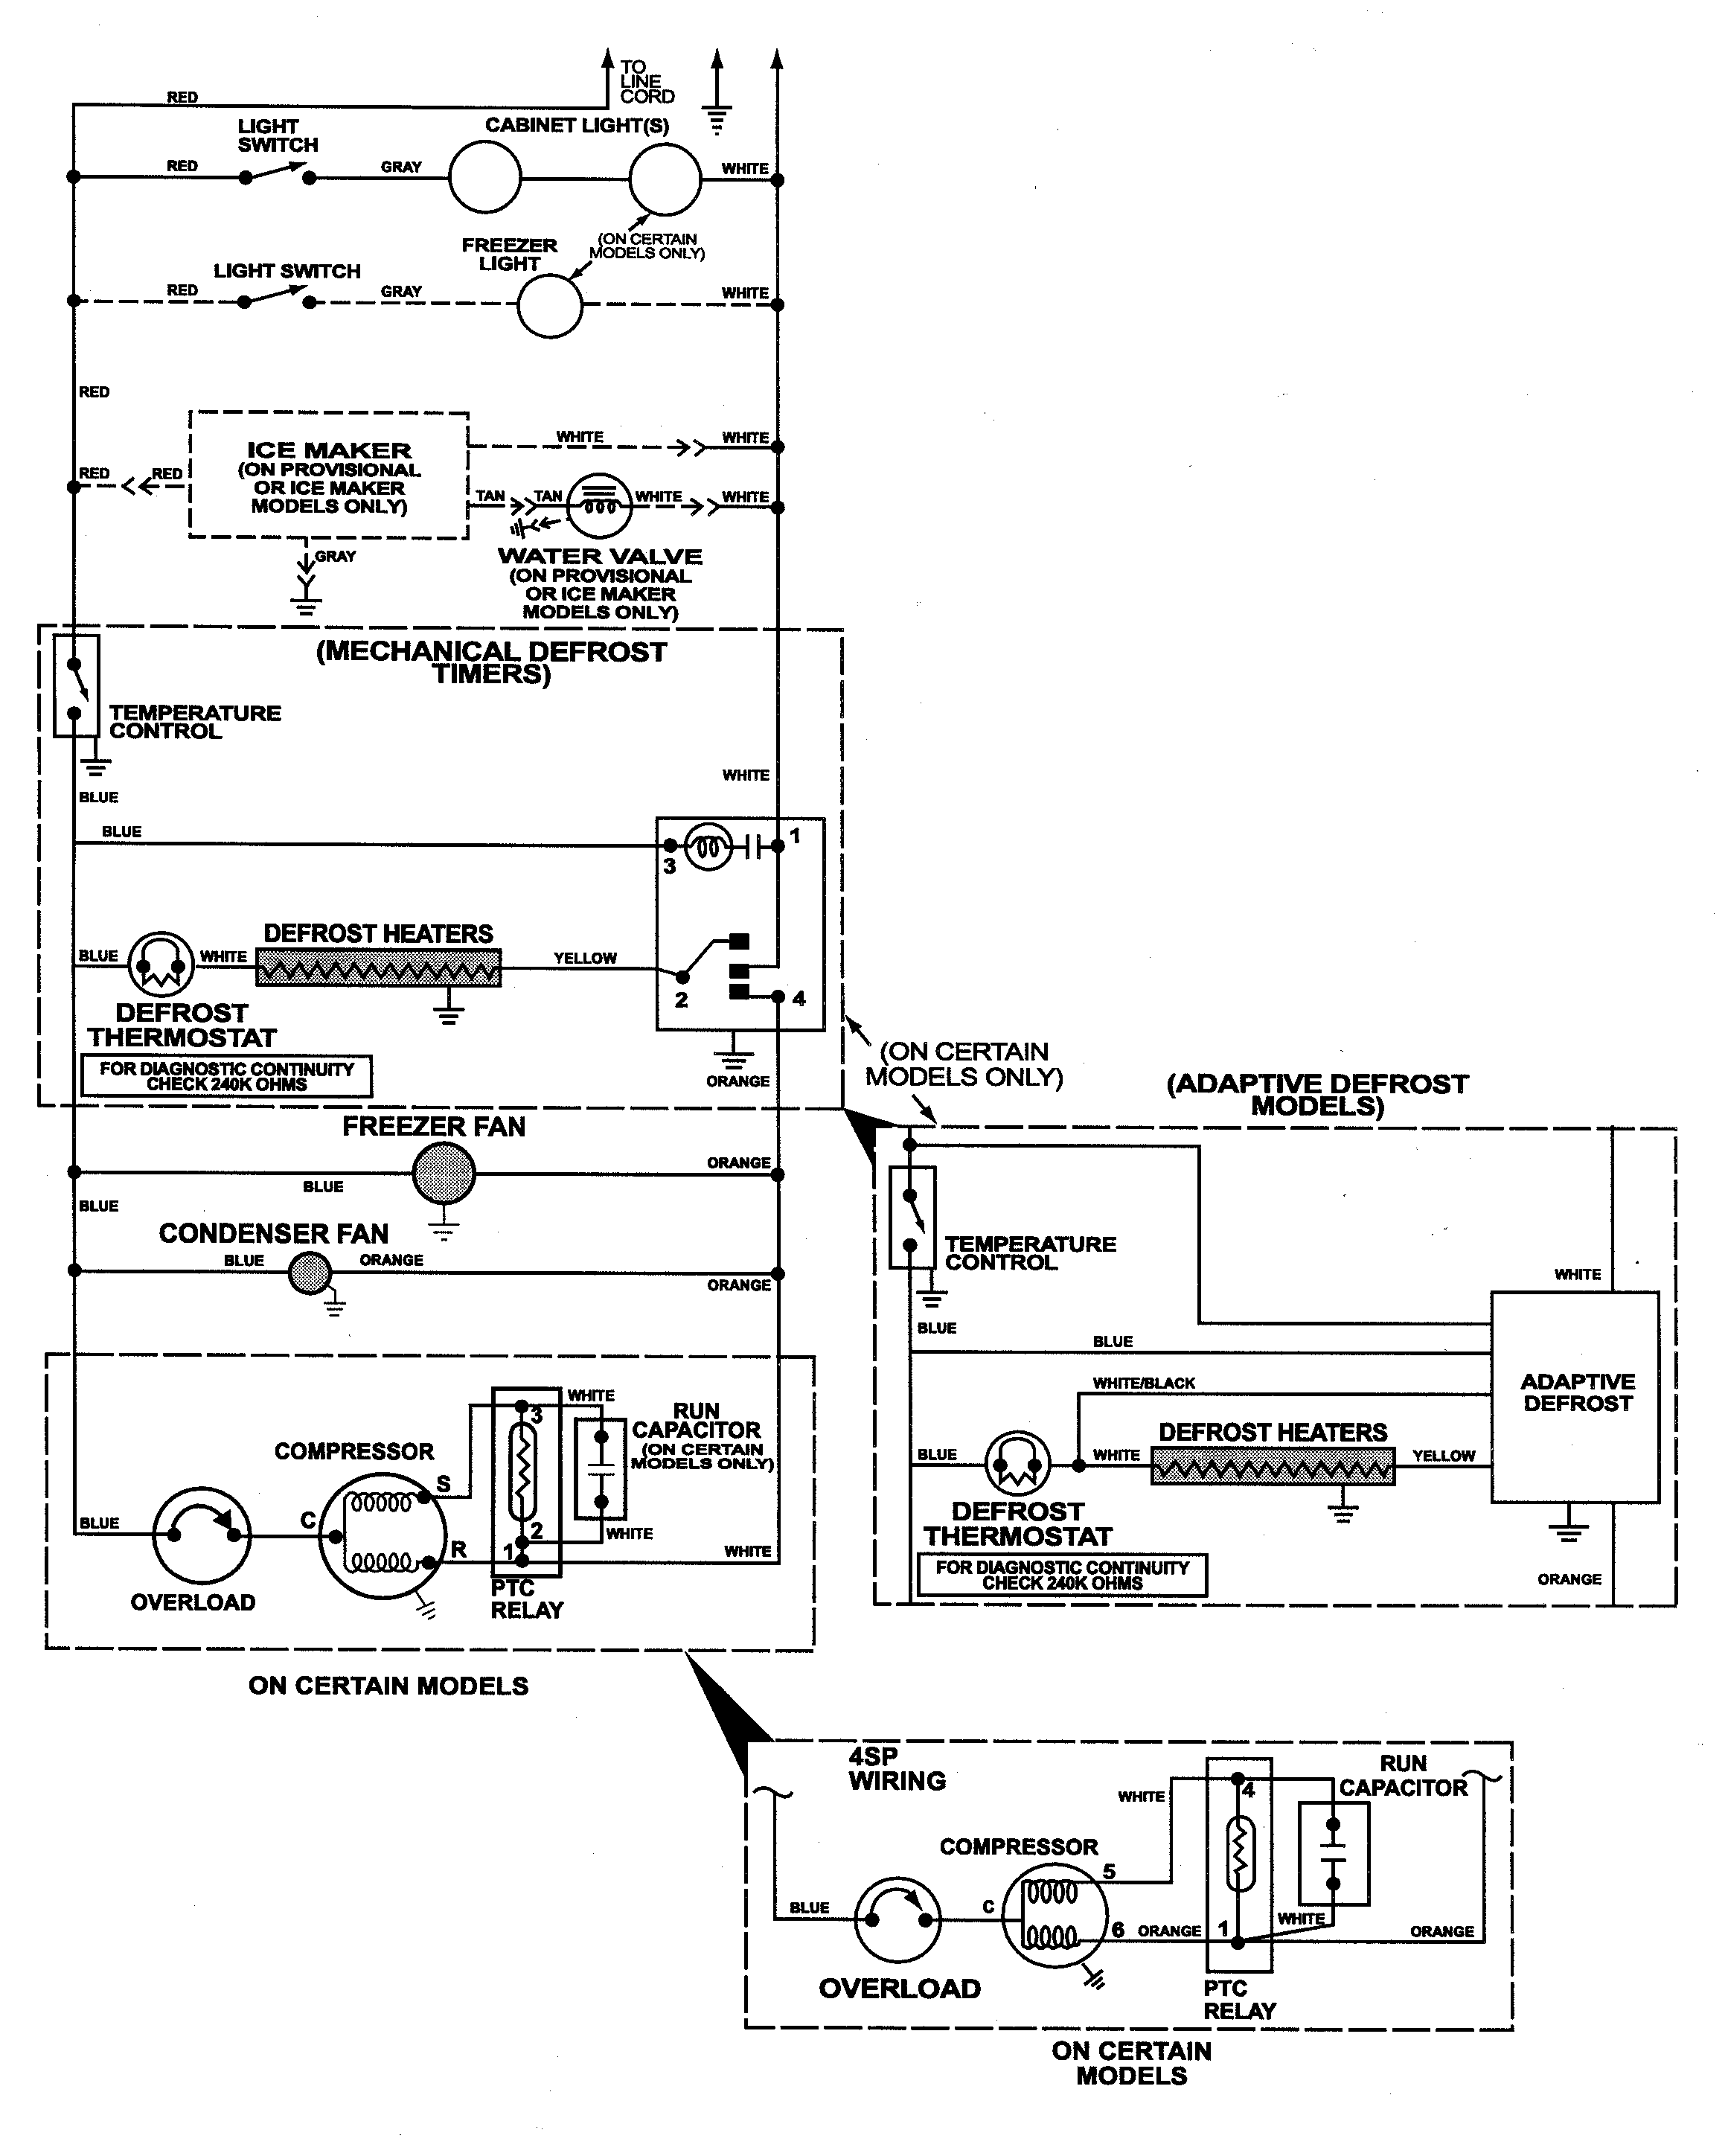 Magic Chef Ga Furnace Control Wiring Diagram